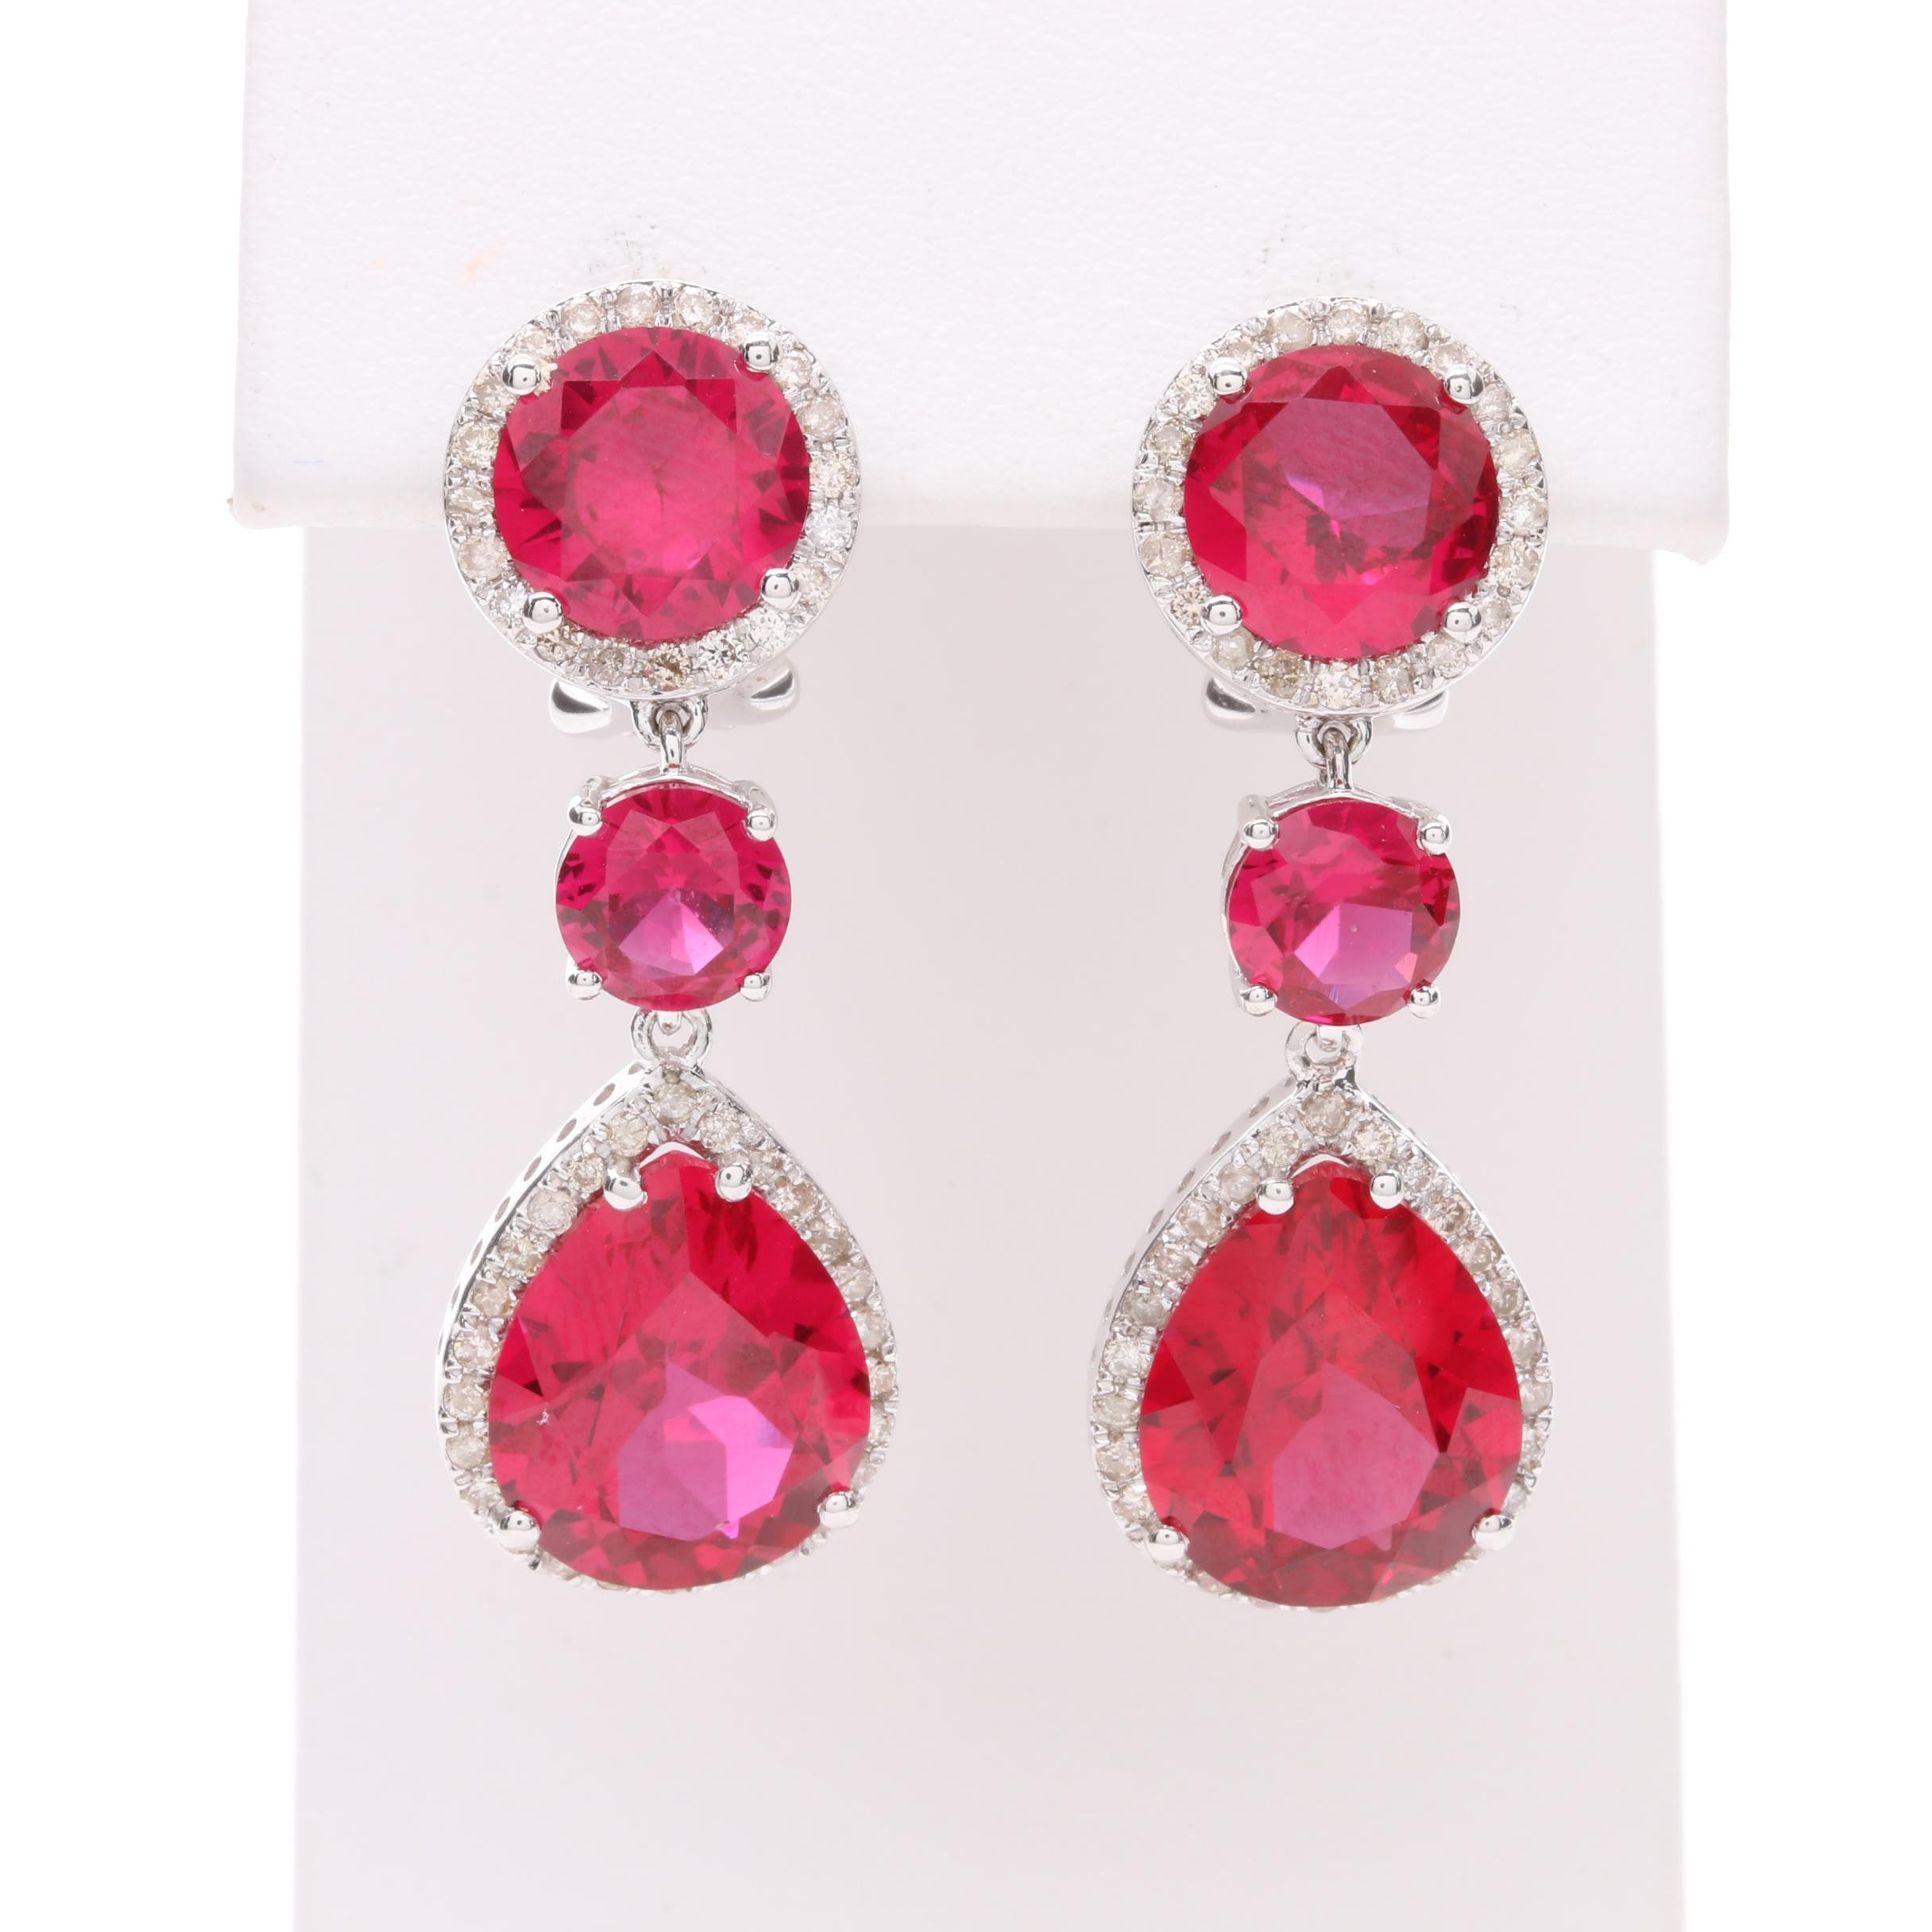 14K White Gold Synthetic Ruby and Diamond Earrings